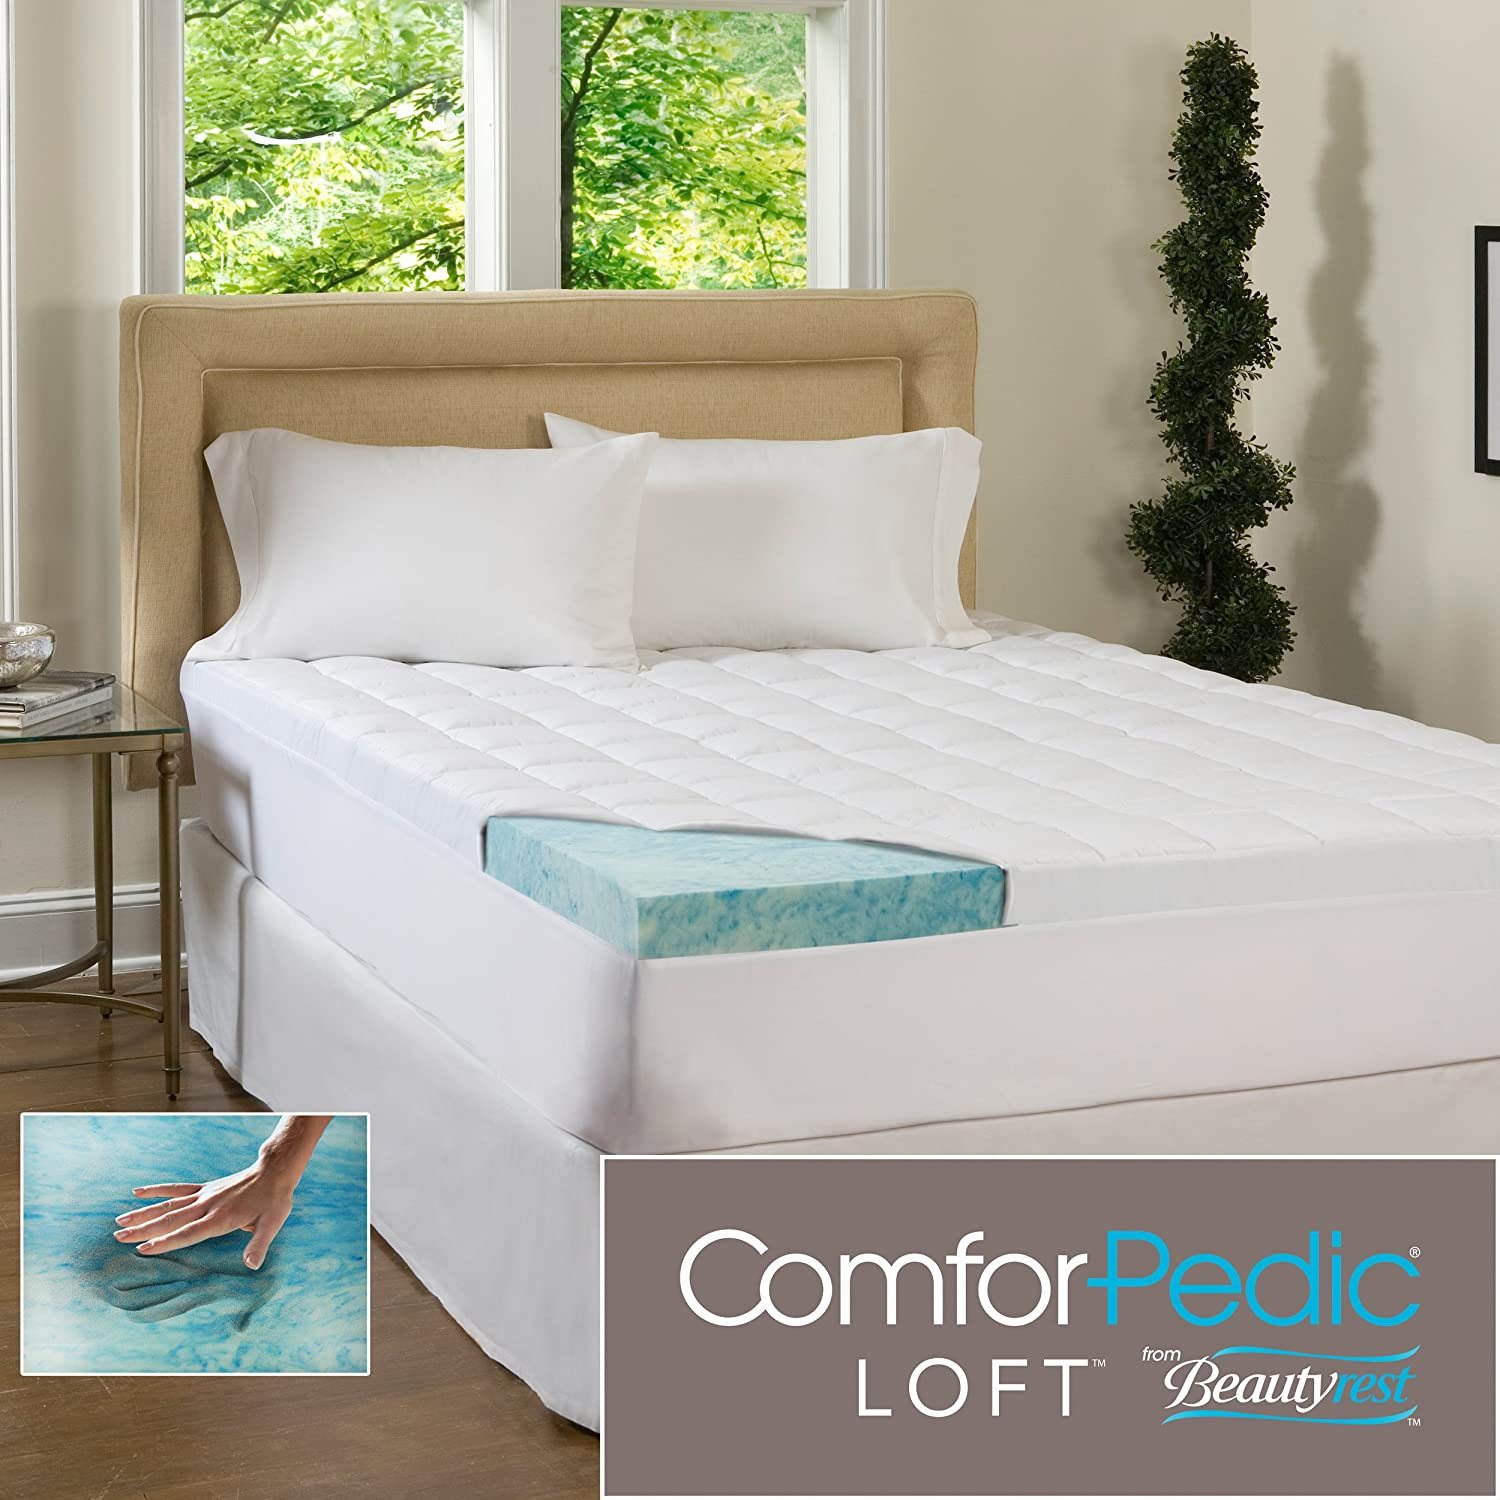 amazon bright illustrious serta full foam ser memory mattress kitchen super size topper review amazing bew home king stimulating queen sleep inch serenia com of combo